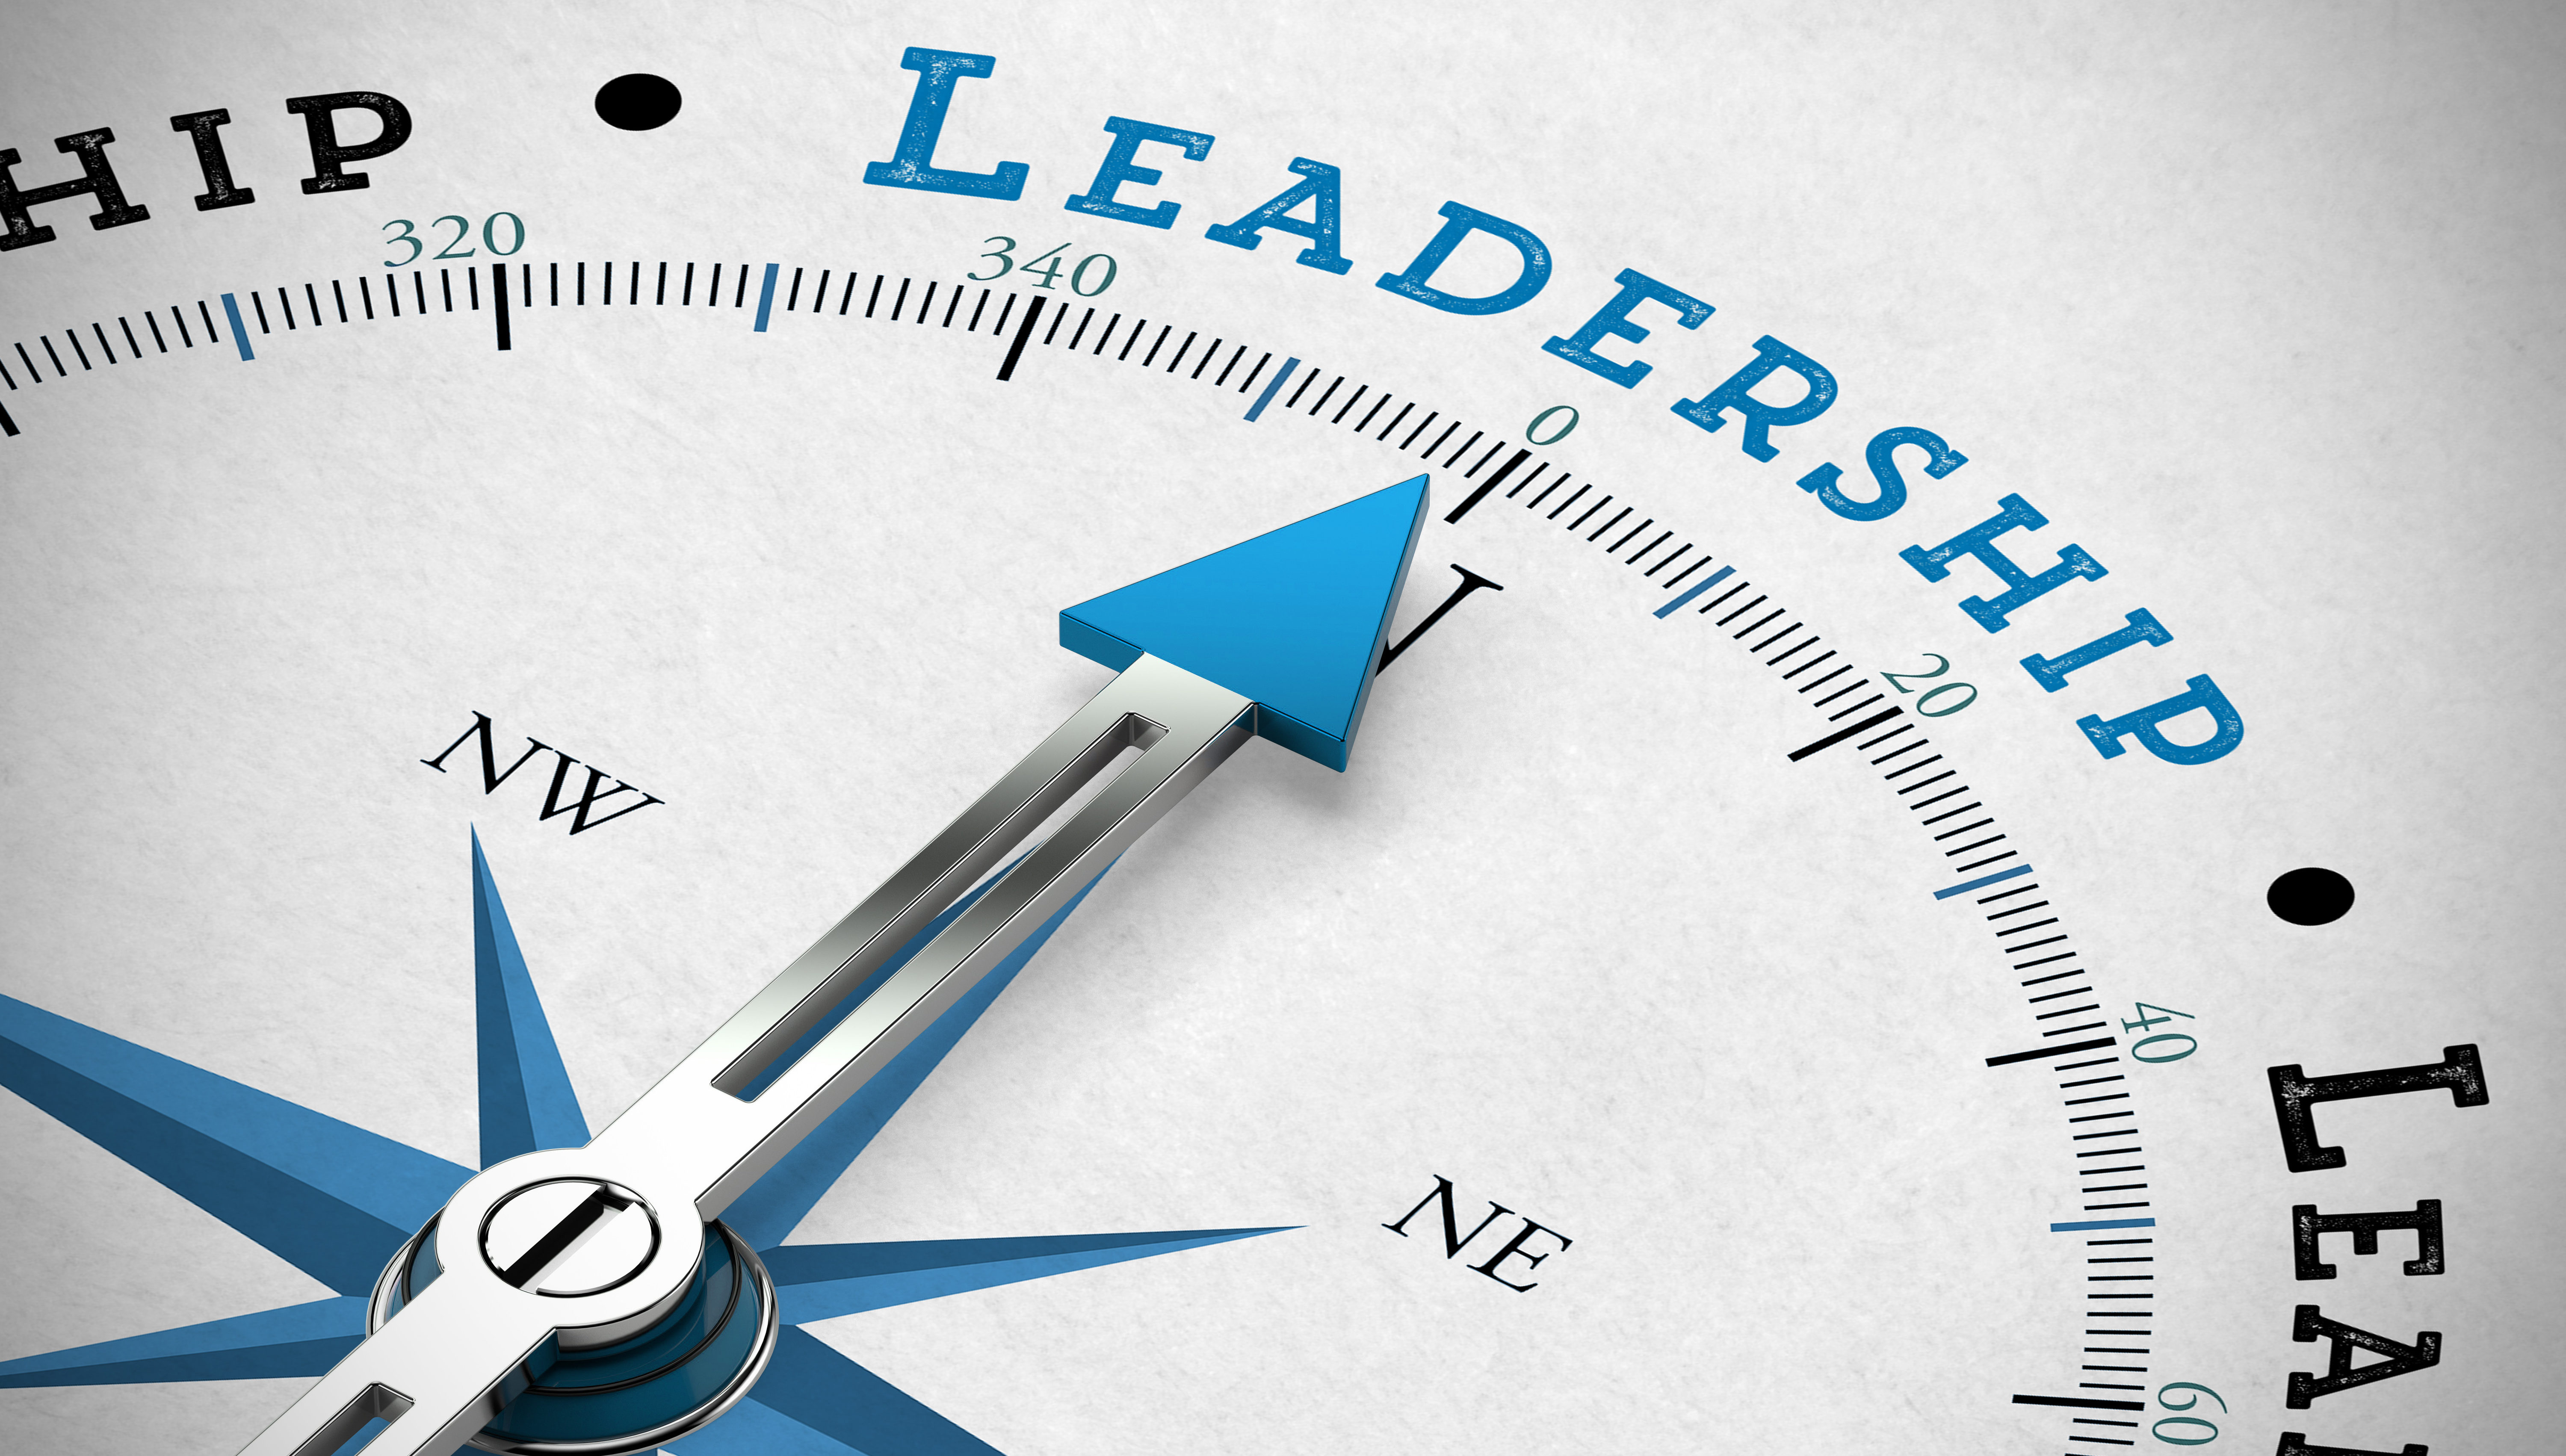 Four Years In A Row Dell Boomi Named A Leader In The Gartner Magic Quadrant For Enterprise